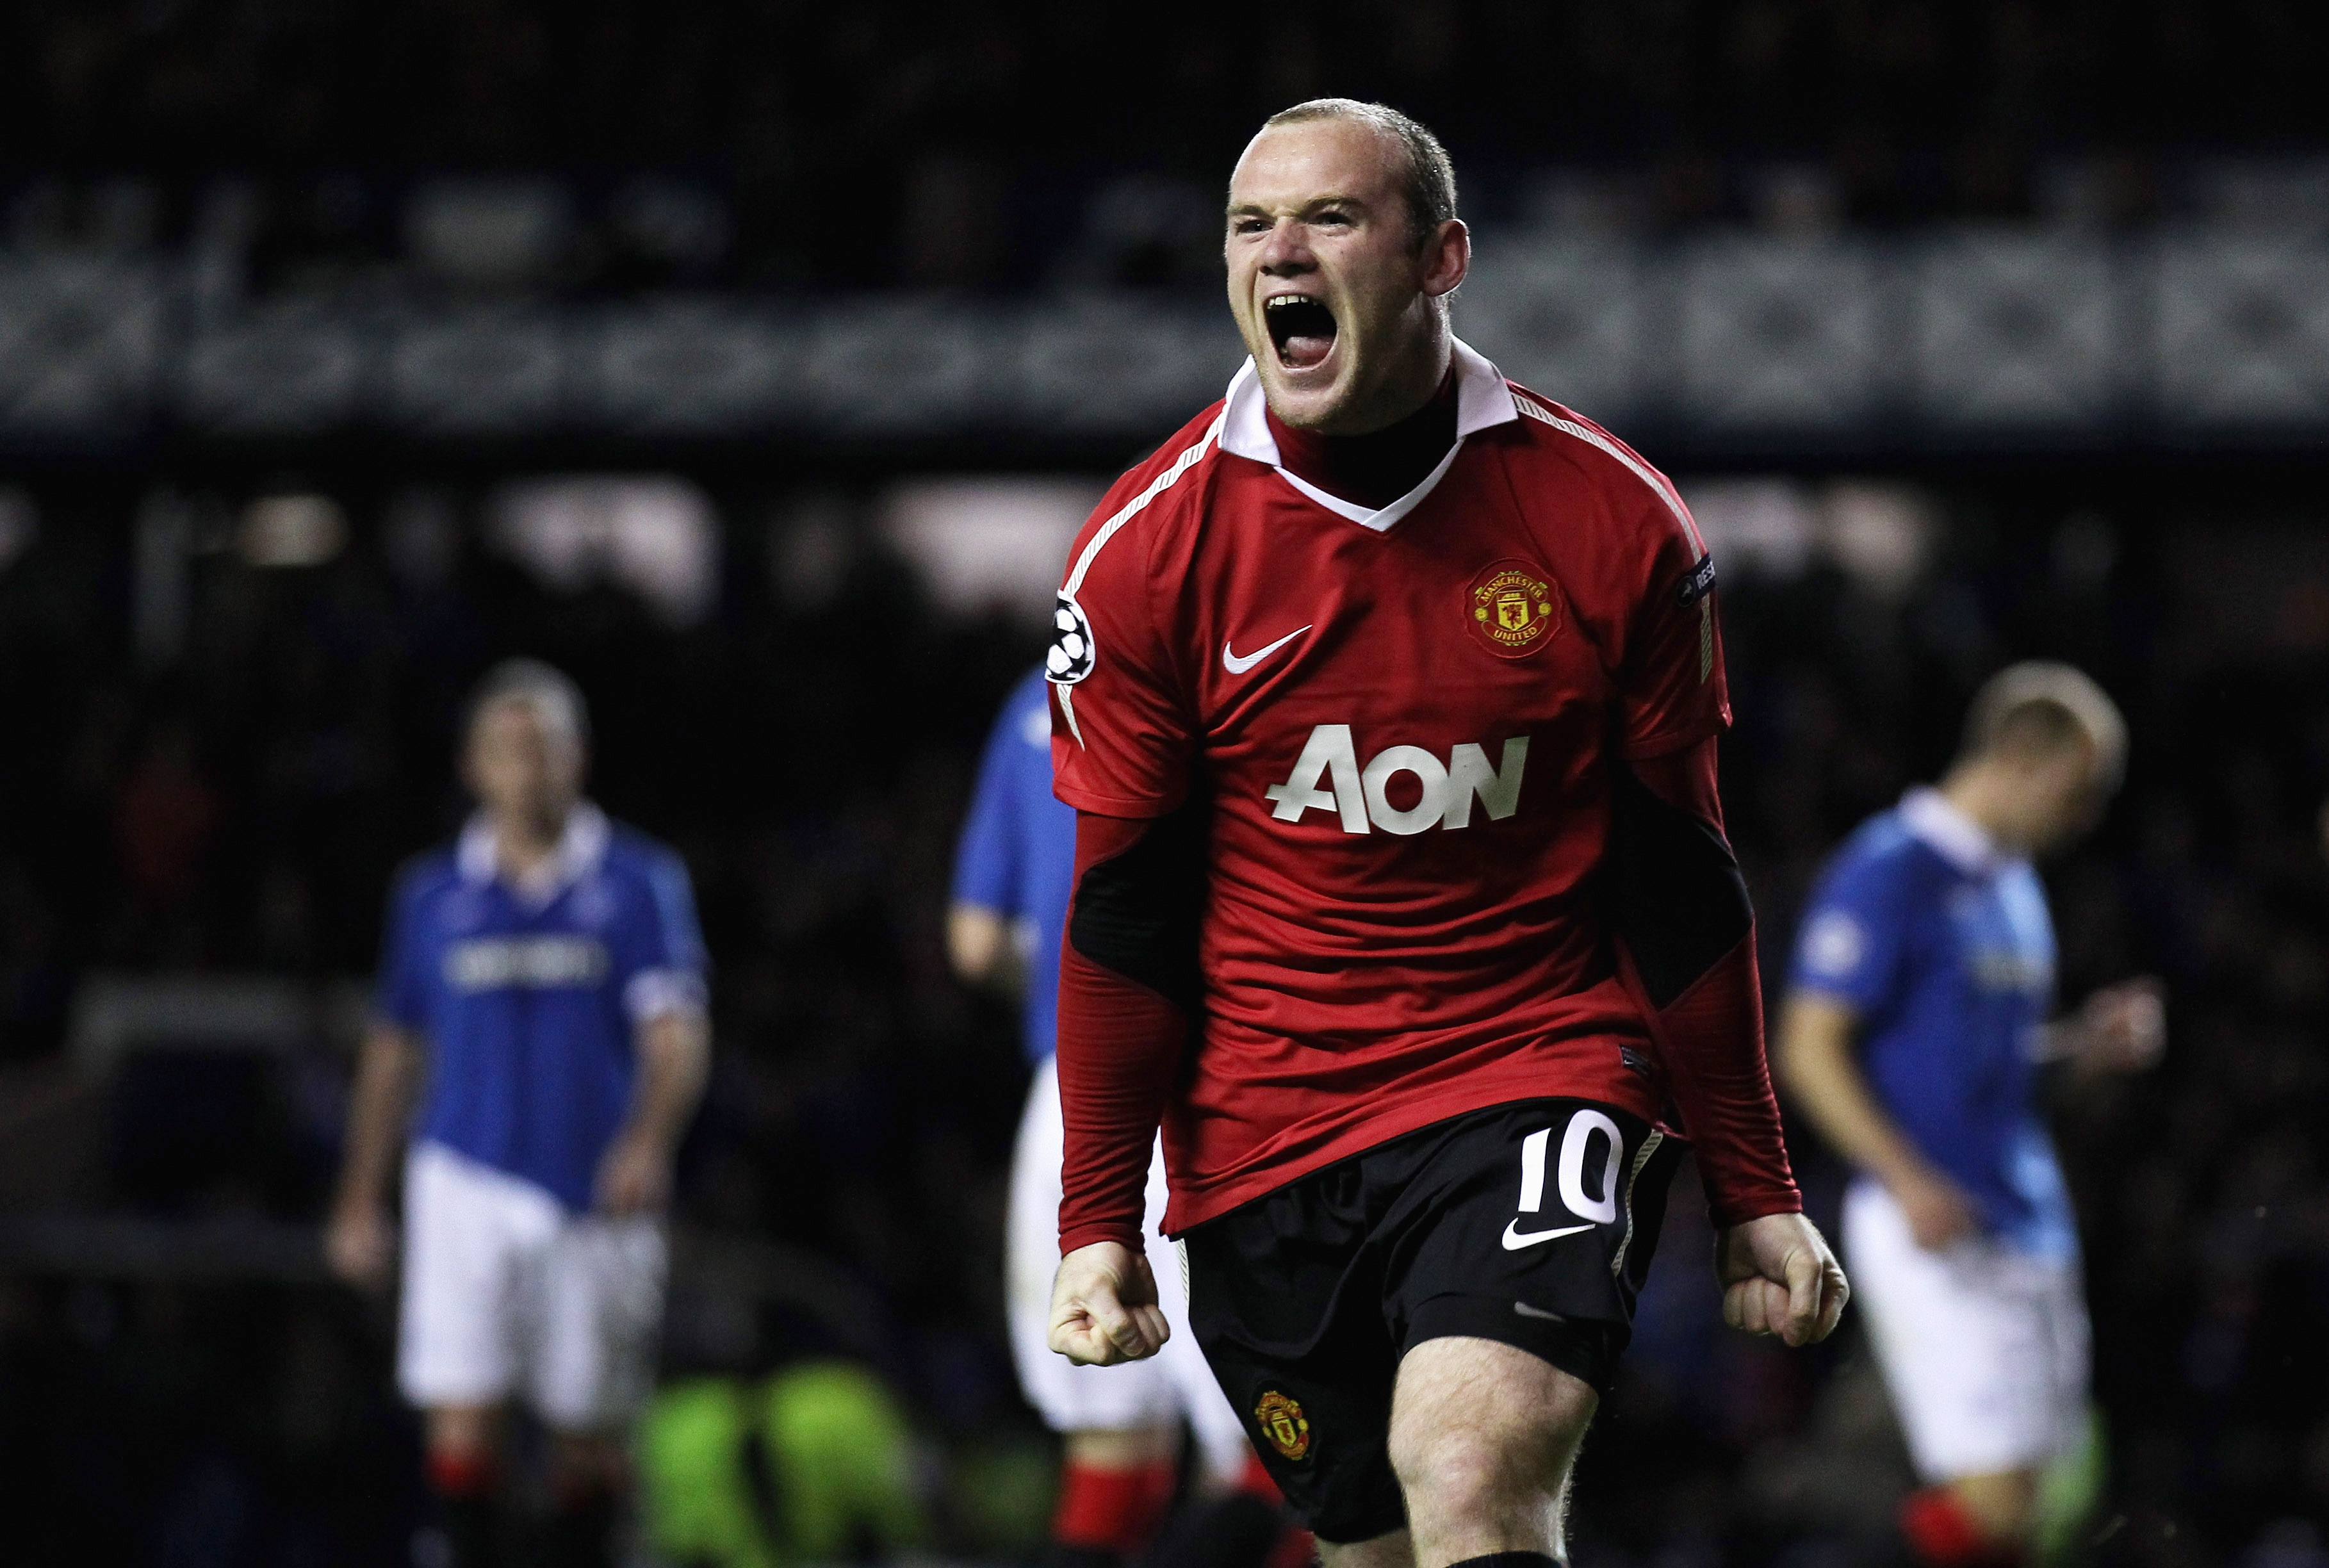 GLASGOW, SCOTLAND - NOVEMBER 24:  Wayne Rooney of Manchester United celebrates after scoring the winning goal from the penalty spot during the UEFA Champions League Group C match between Glasgow Rangers and Manchester United at Ibrox on November 24, 2010